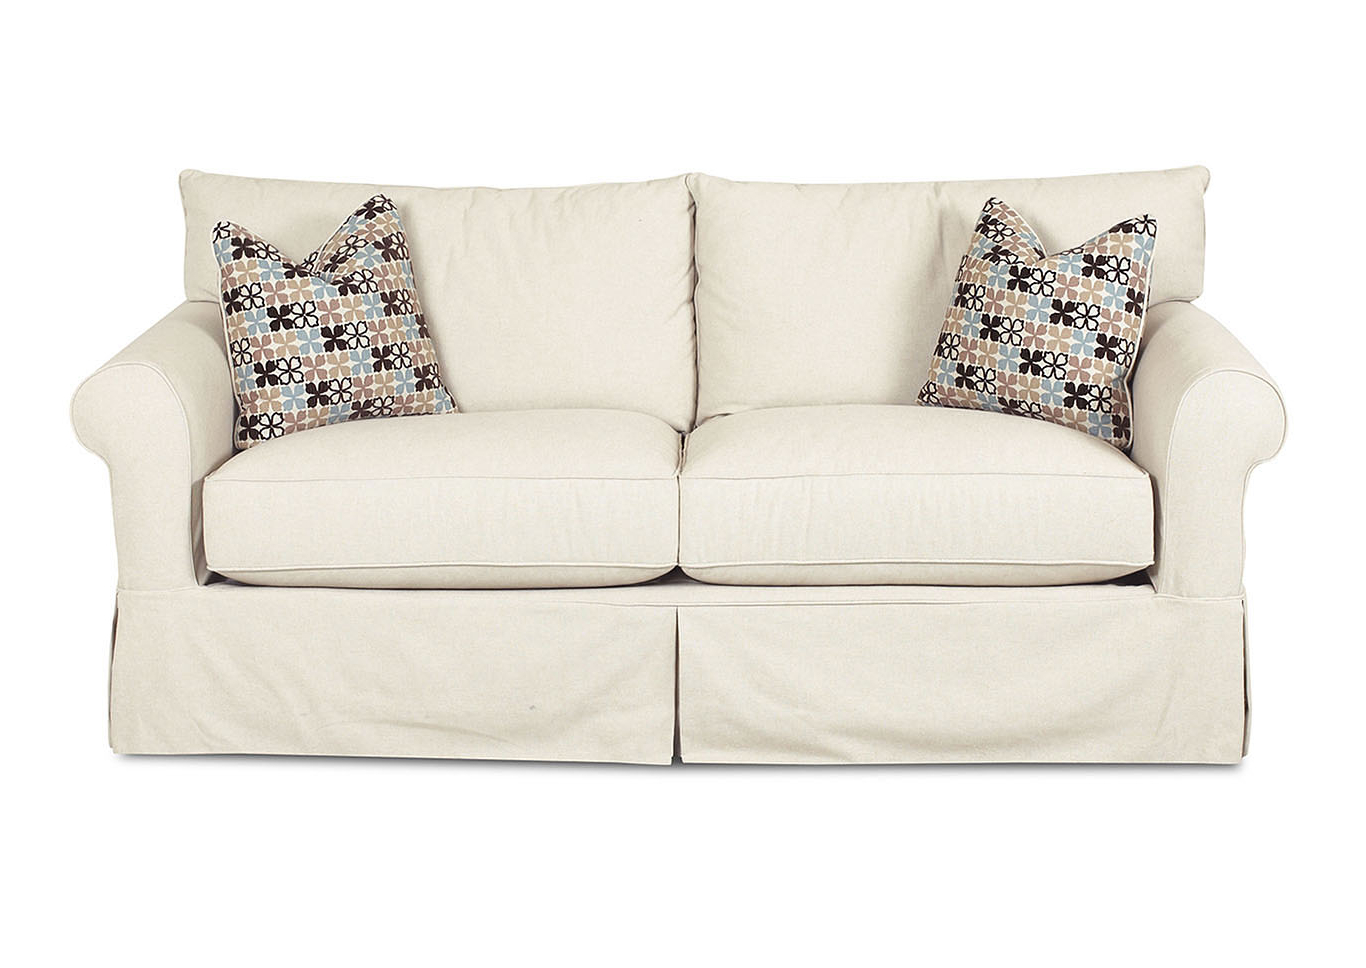 Furniture & More Galleries Jenny Beige Stationary Fabric Sofa With Fashionable Bristol Loveseats With Cushions (View 10 of 20)